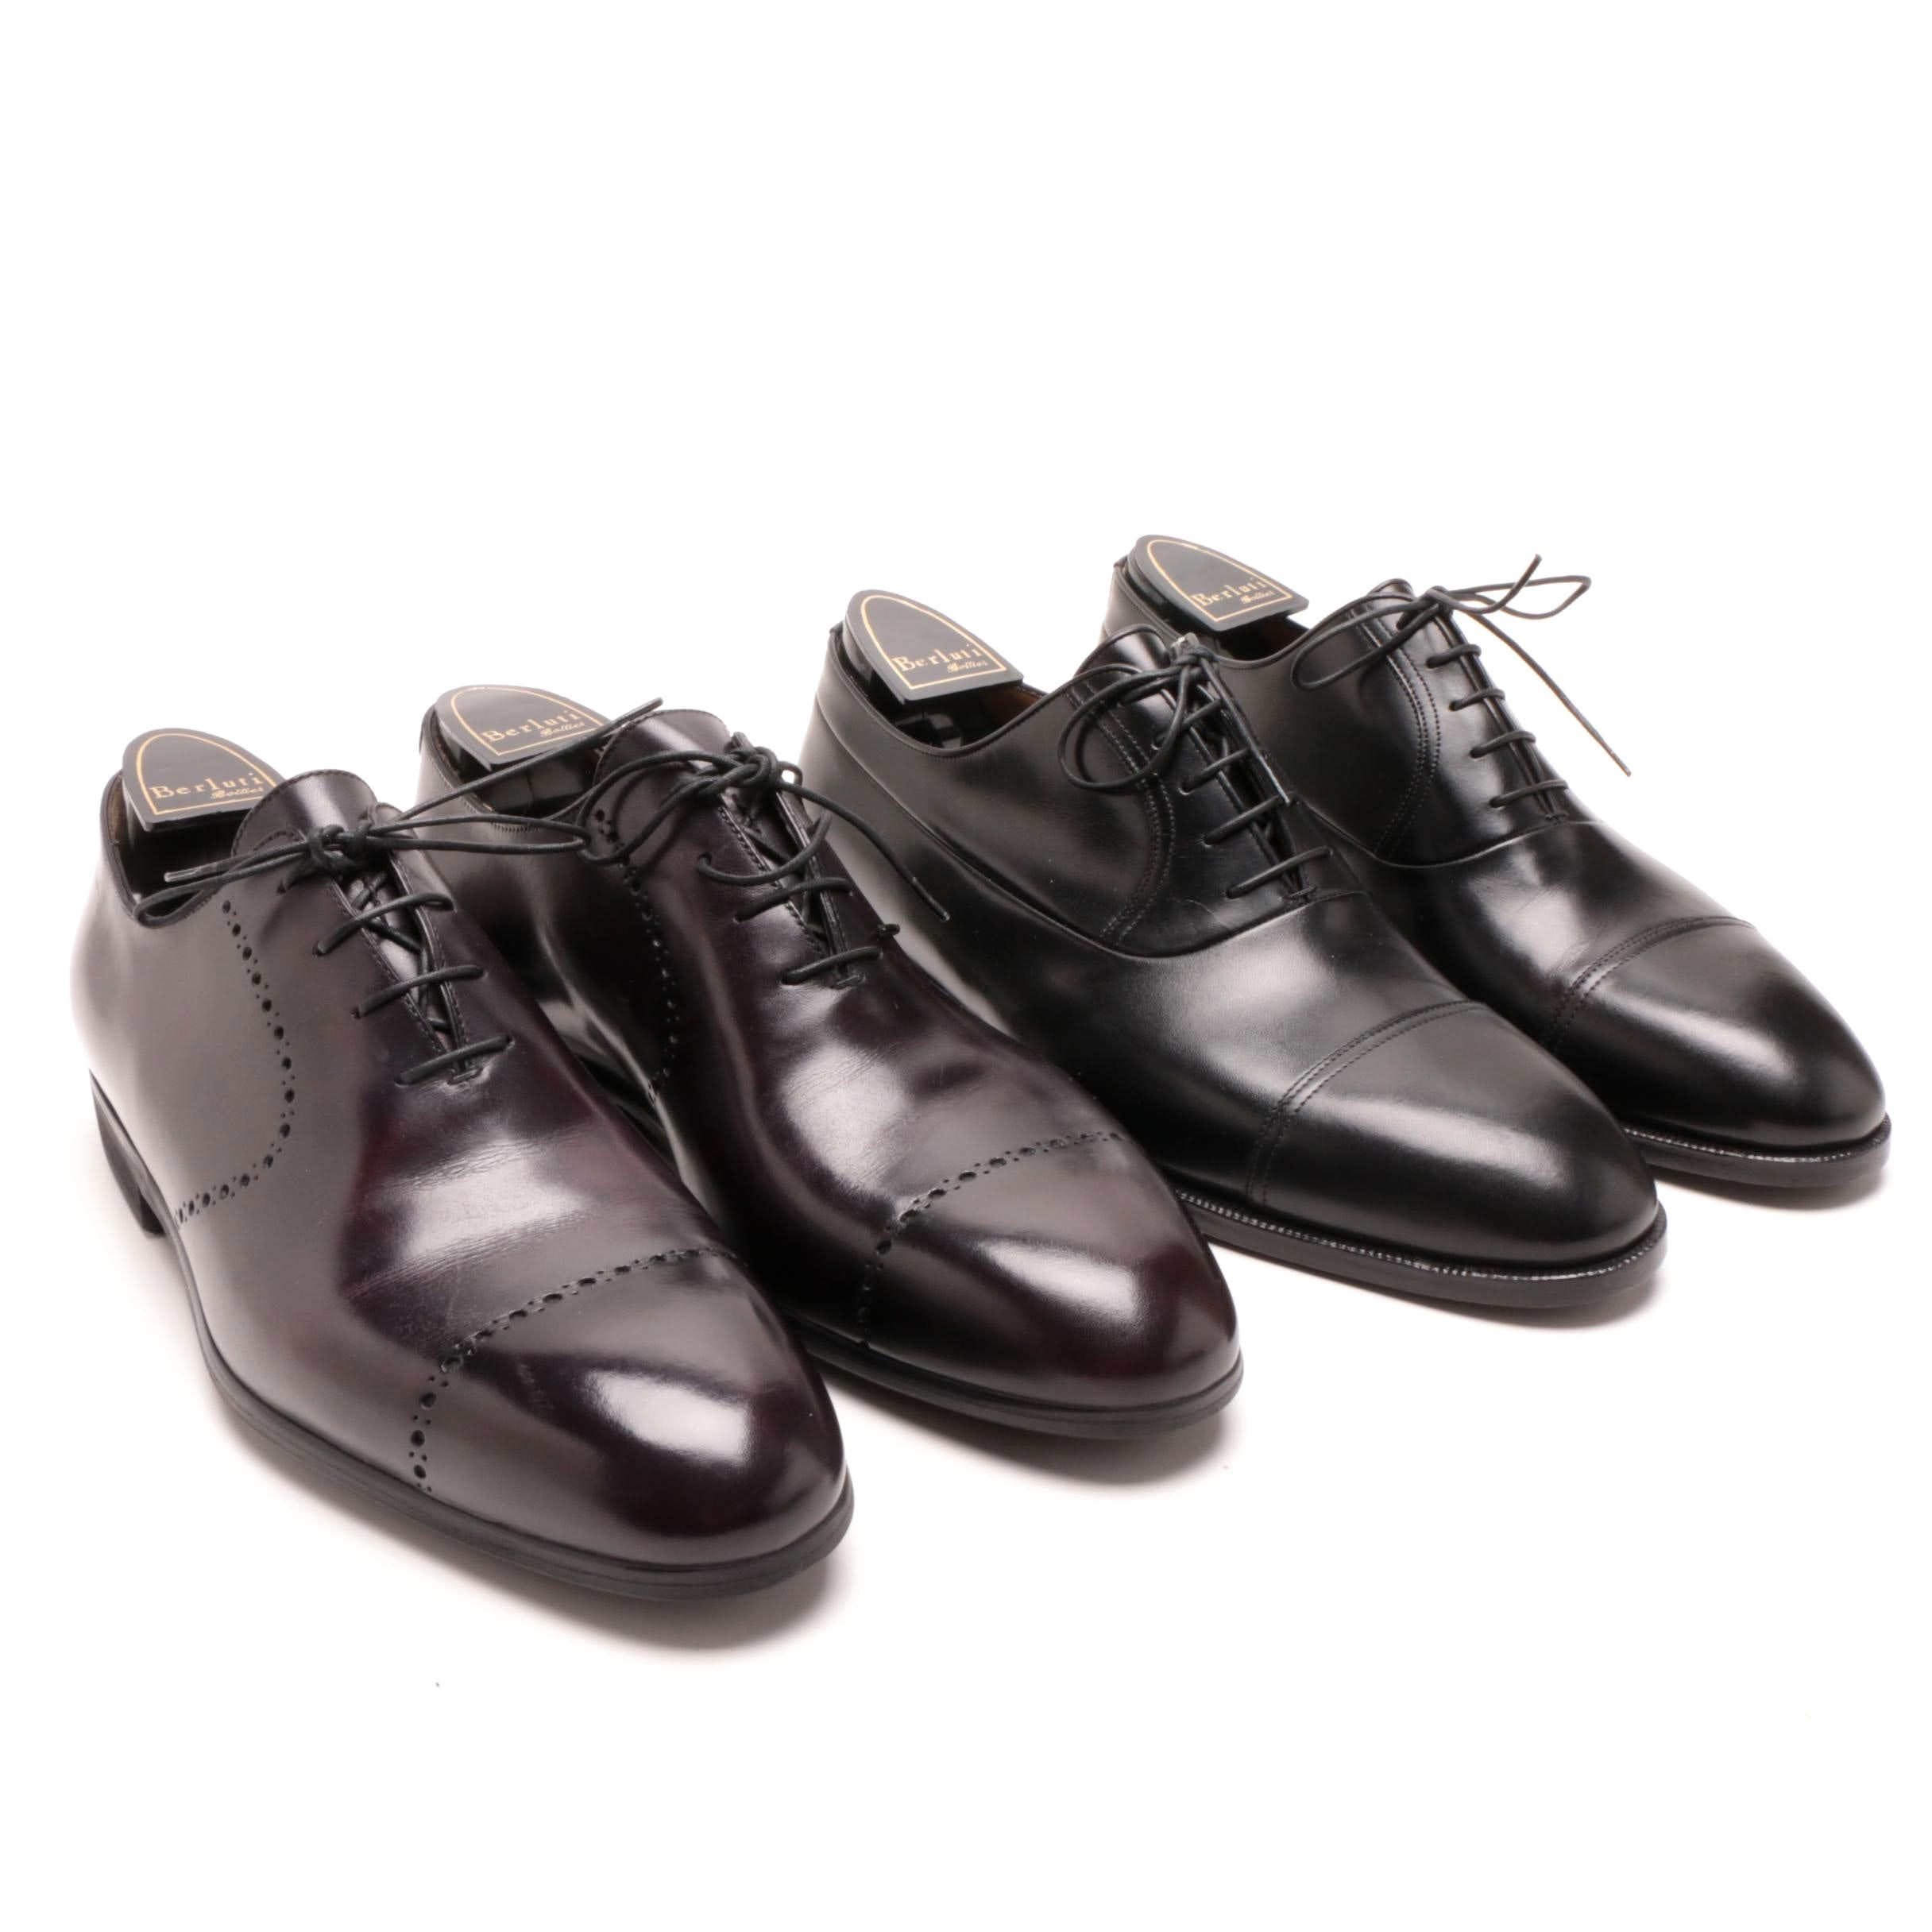 Men's Berluti Leather Dress Shoes